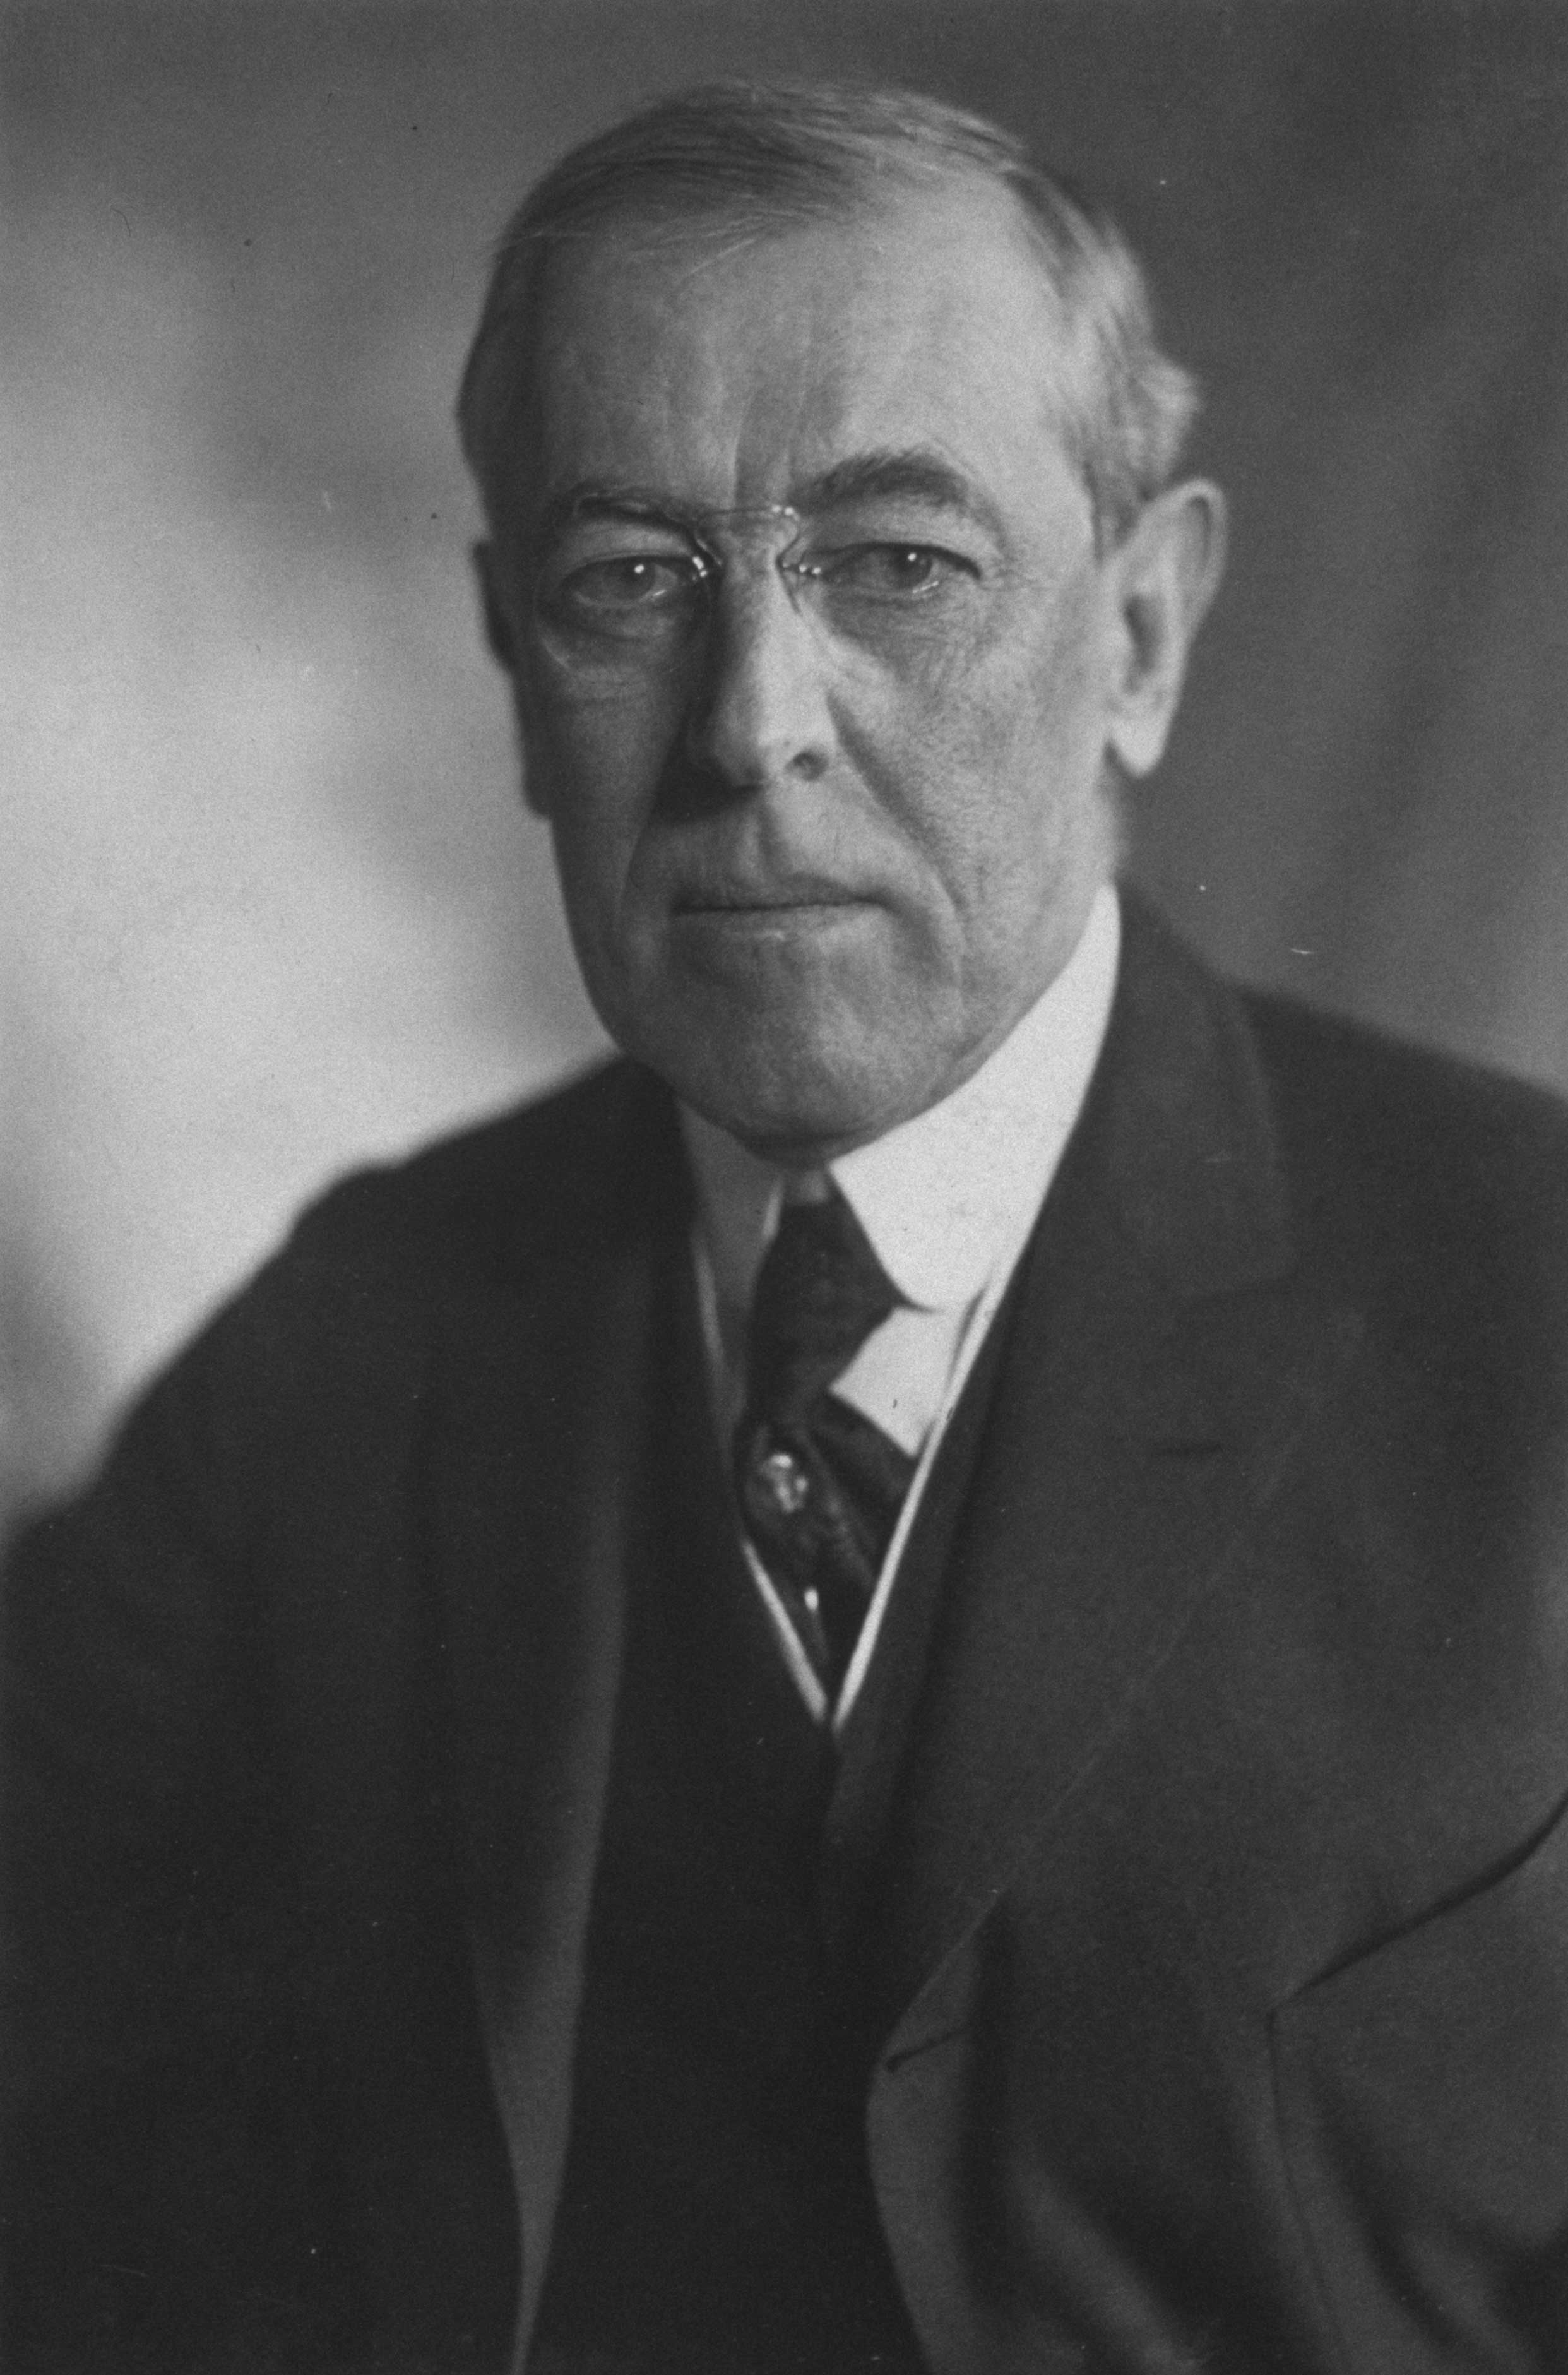 woodrow wilson and american history Find facts, famous events and accomplishments of president woodrow wilson for kids summary of important events during the presidency of woodrow wilson facts about.